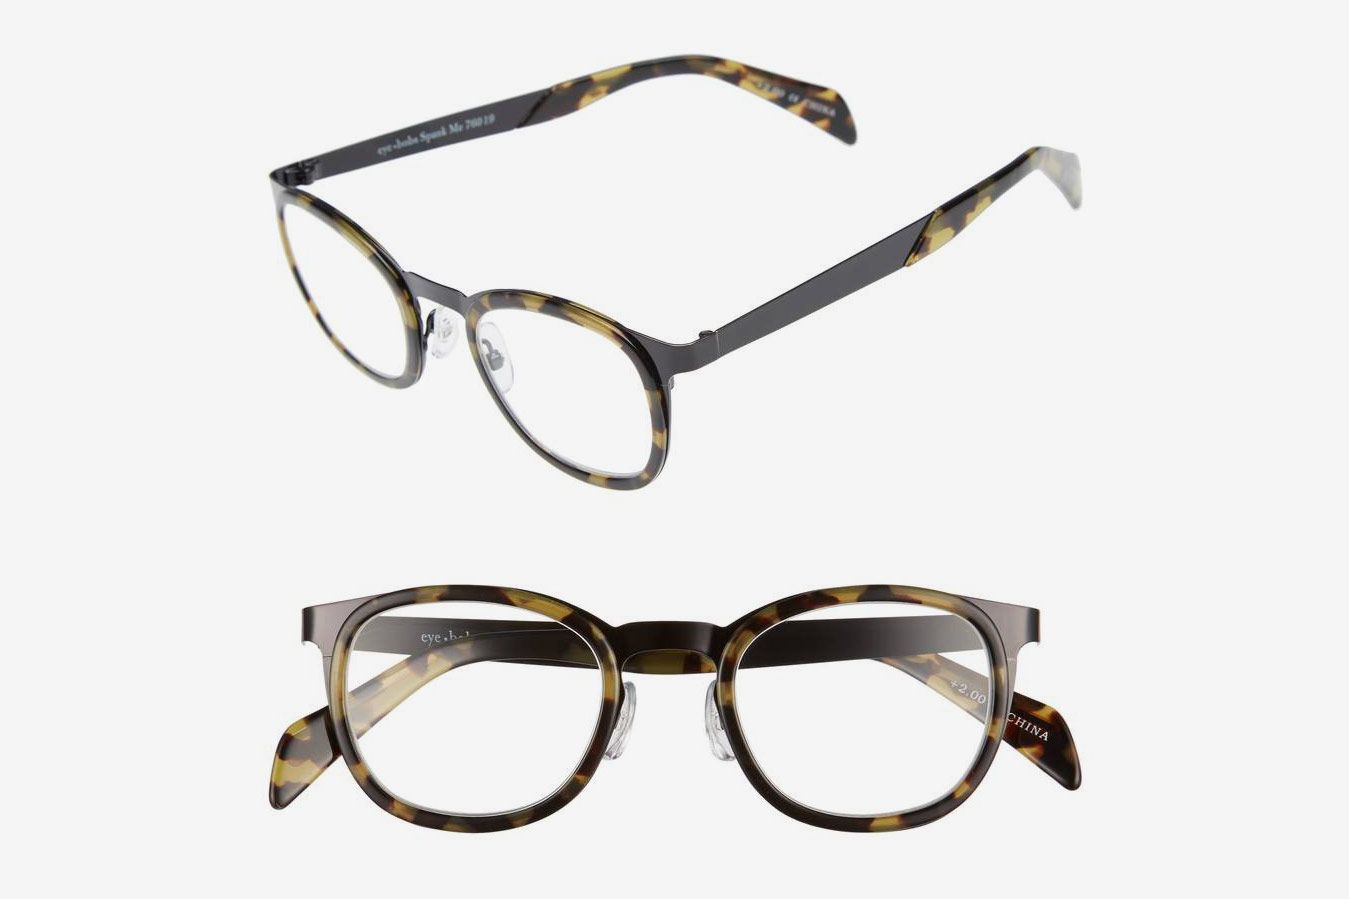 Eyebobs Spank Me 45mm Reading Glasses